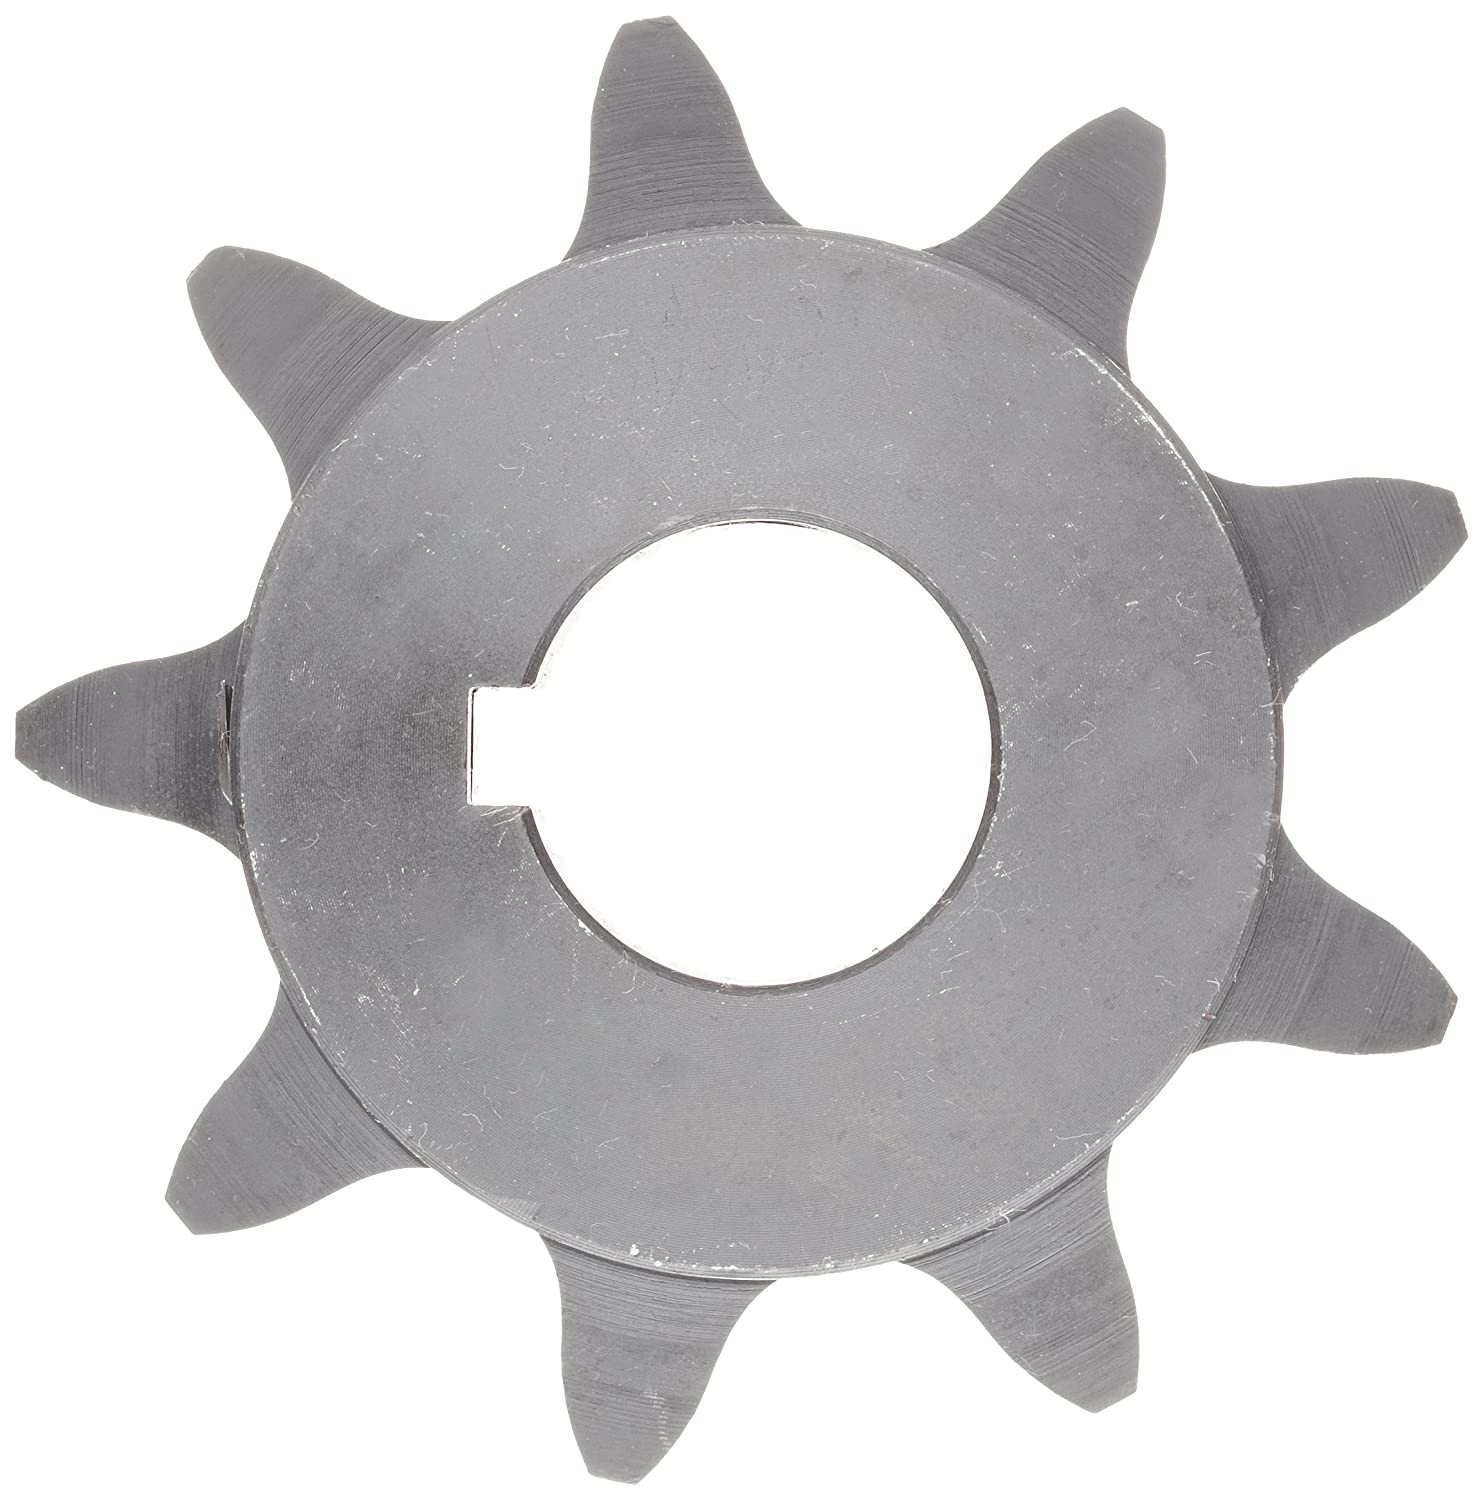 Single Strand 30 Teeth Tsubaki 80B30F-2G Finished Bore Sprocket #80 ANSI No. 2-7//16 Bore 1 Pitch 2-7//16 Bore 1 Pitch Inch